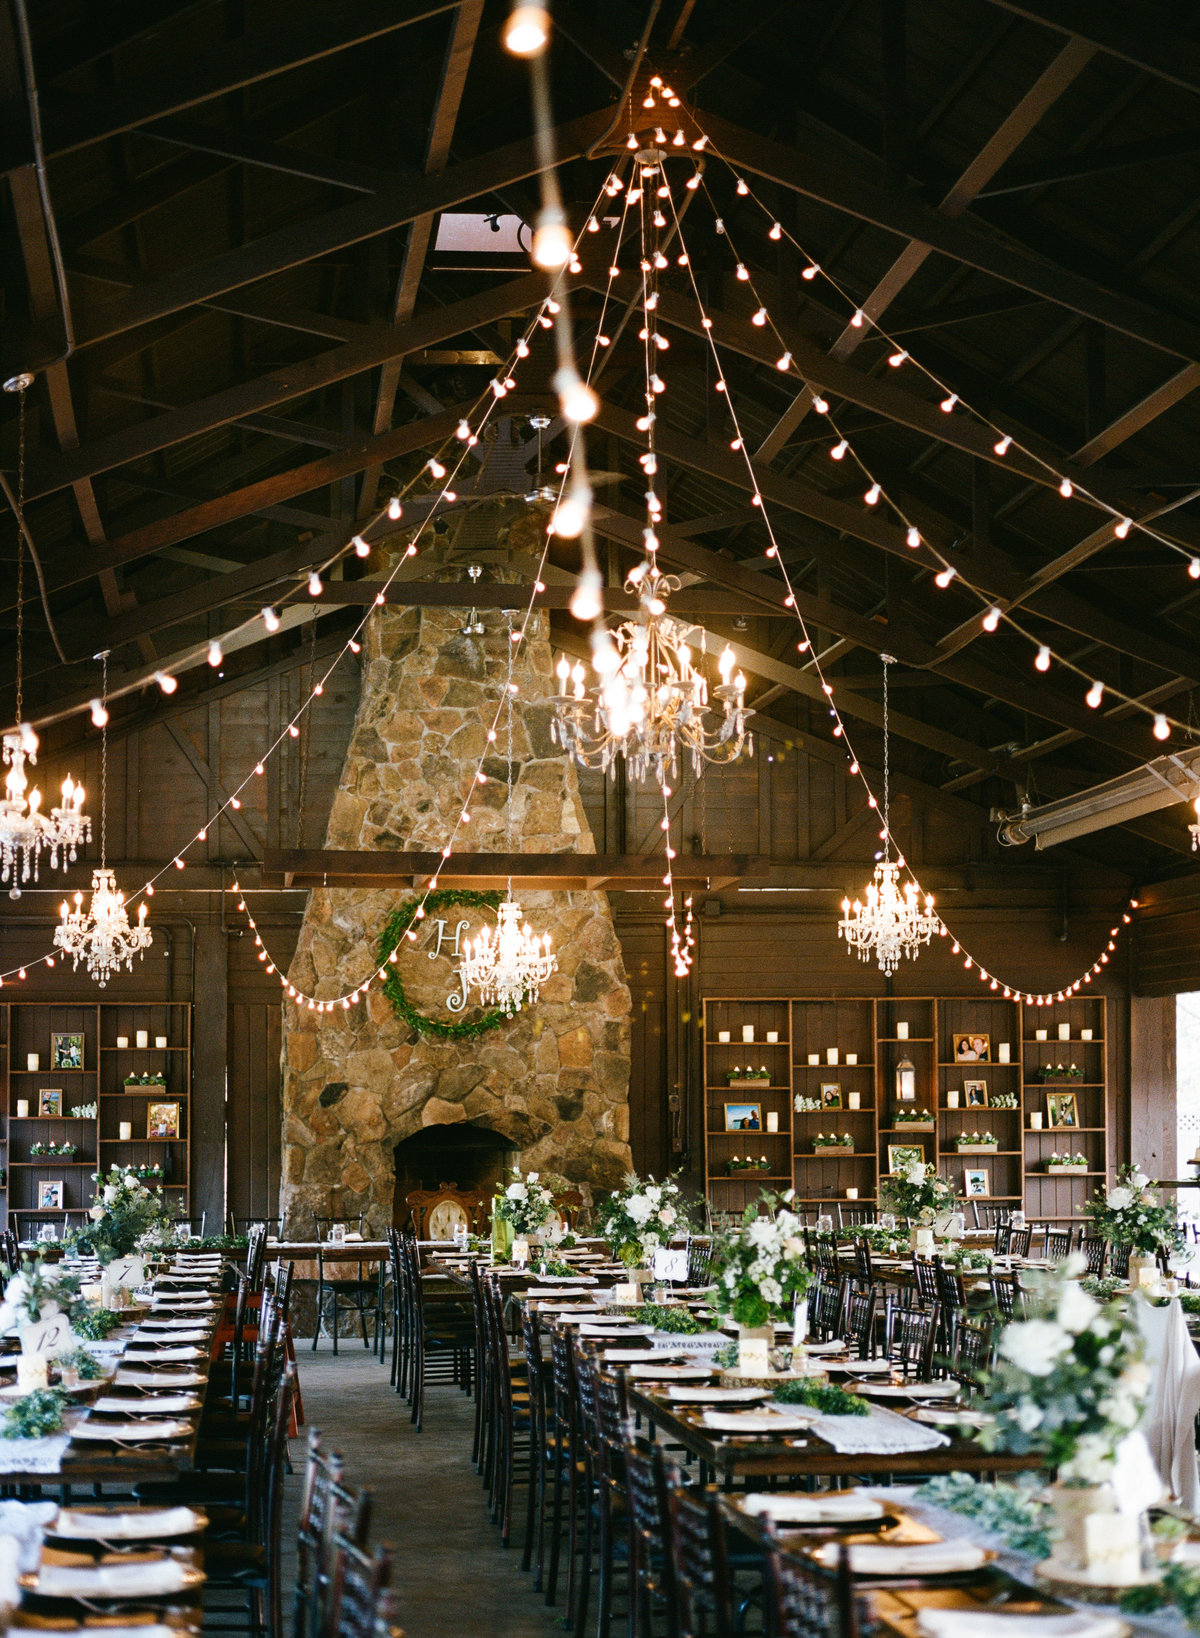 cottage grove wedding venue of dark woods and cafe lights wedding reception woodland feel